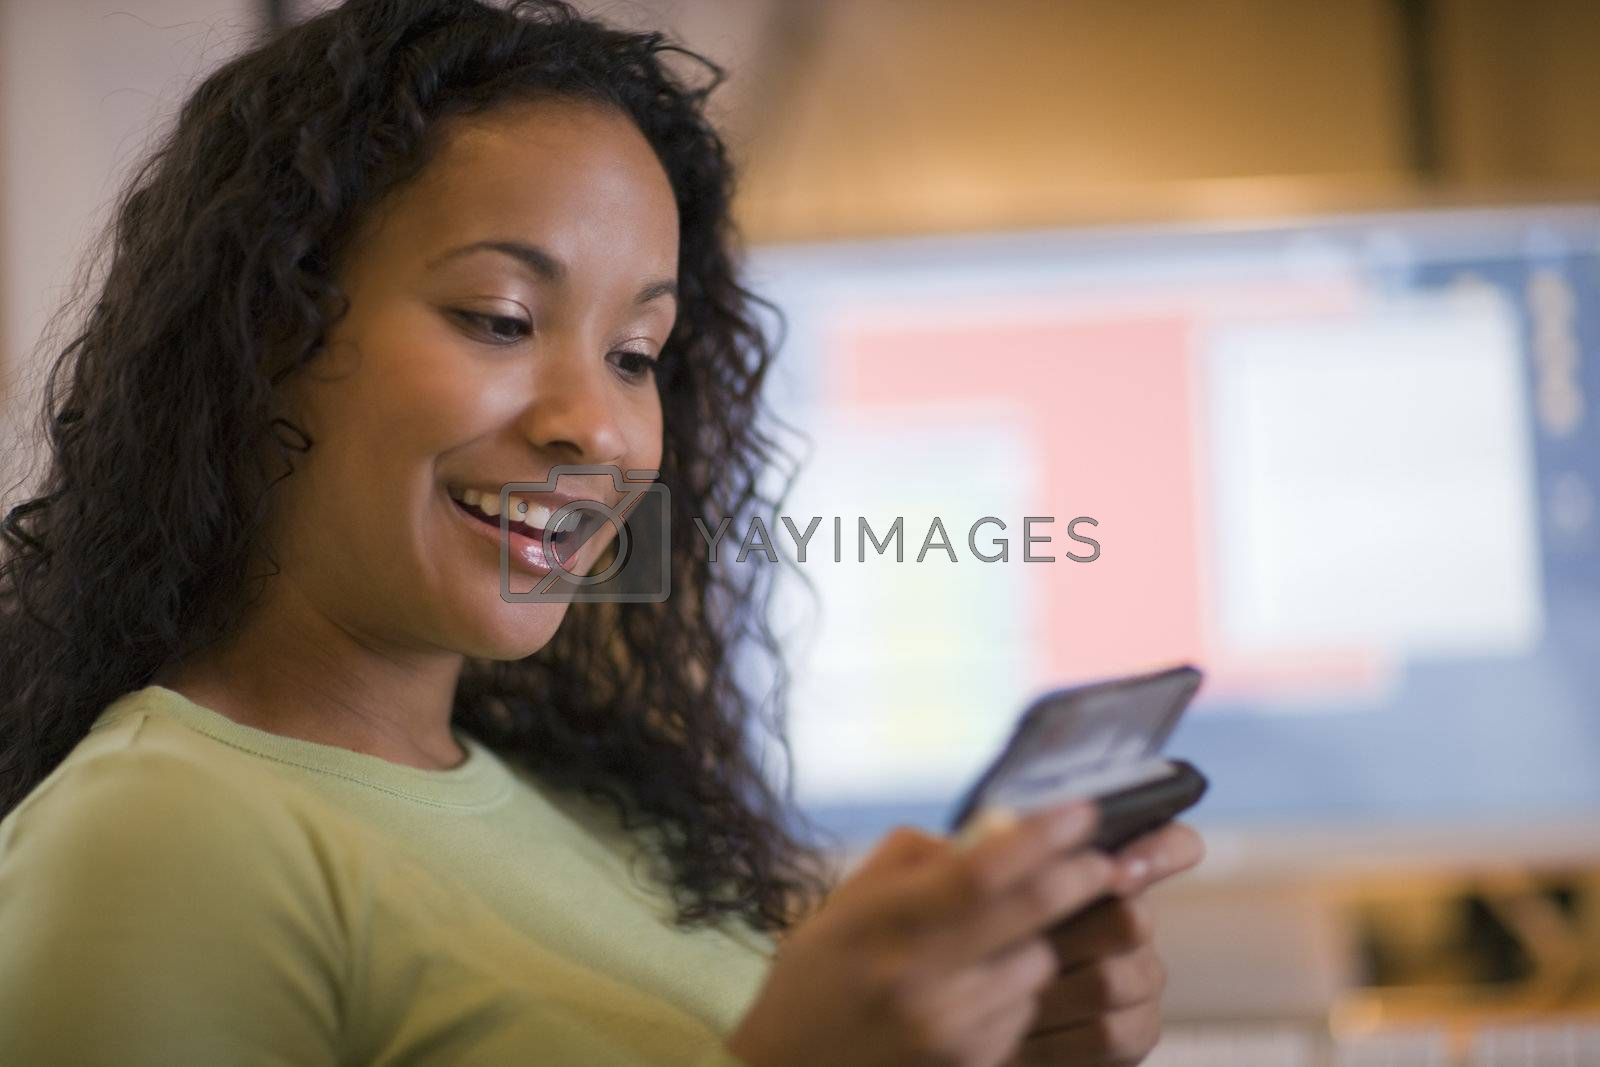 Smiling young African American woman texting on cell phone with computer monitor in the background on desk